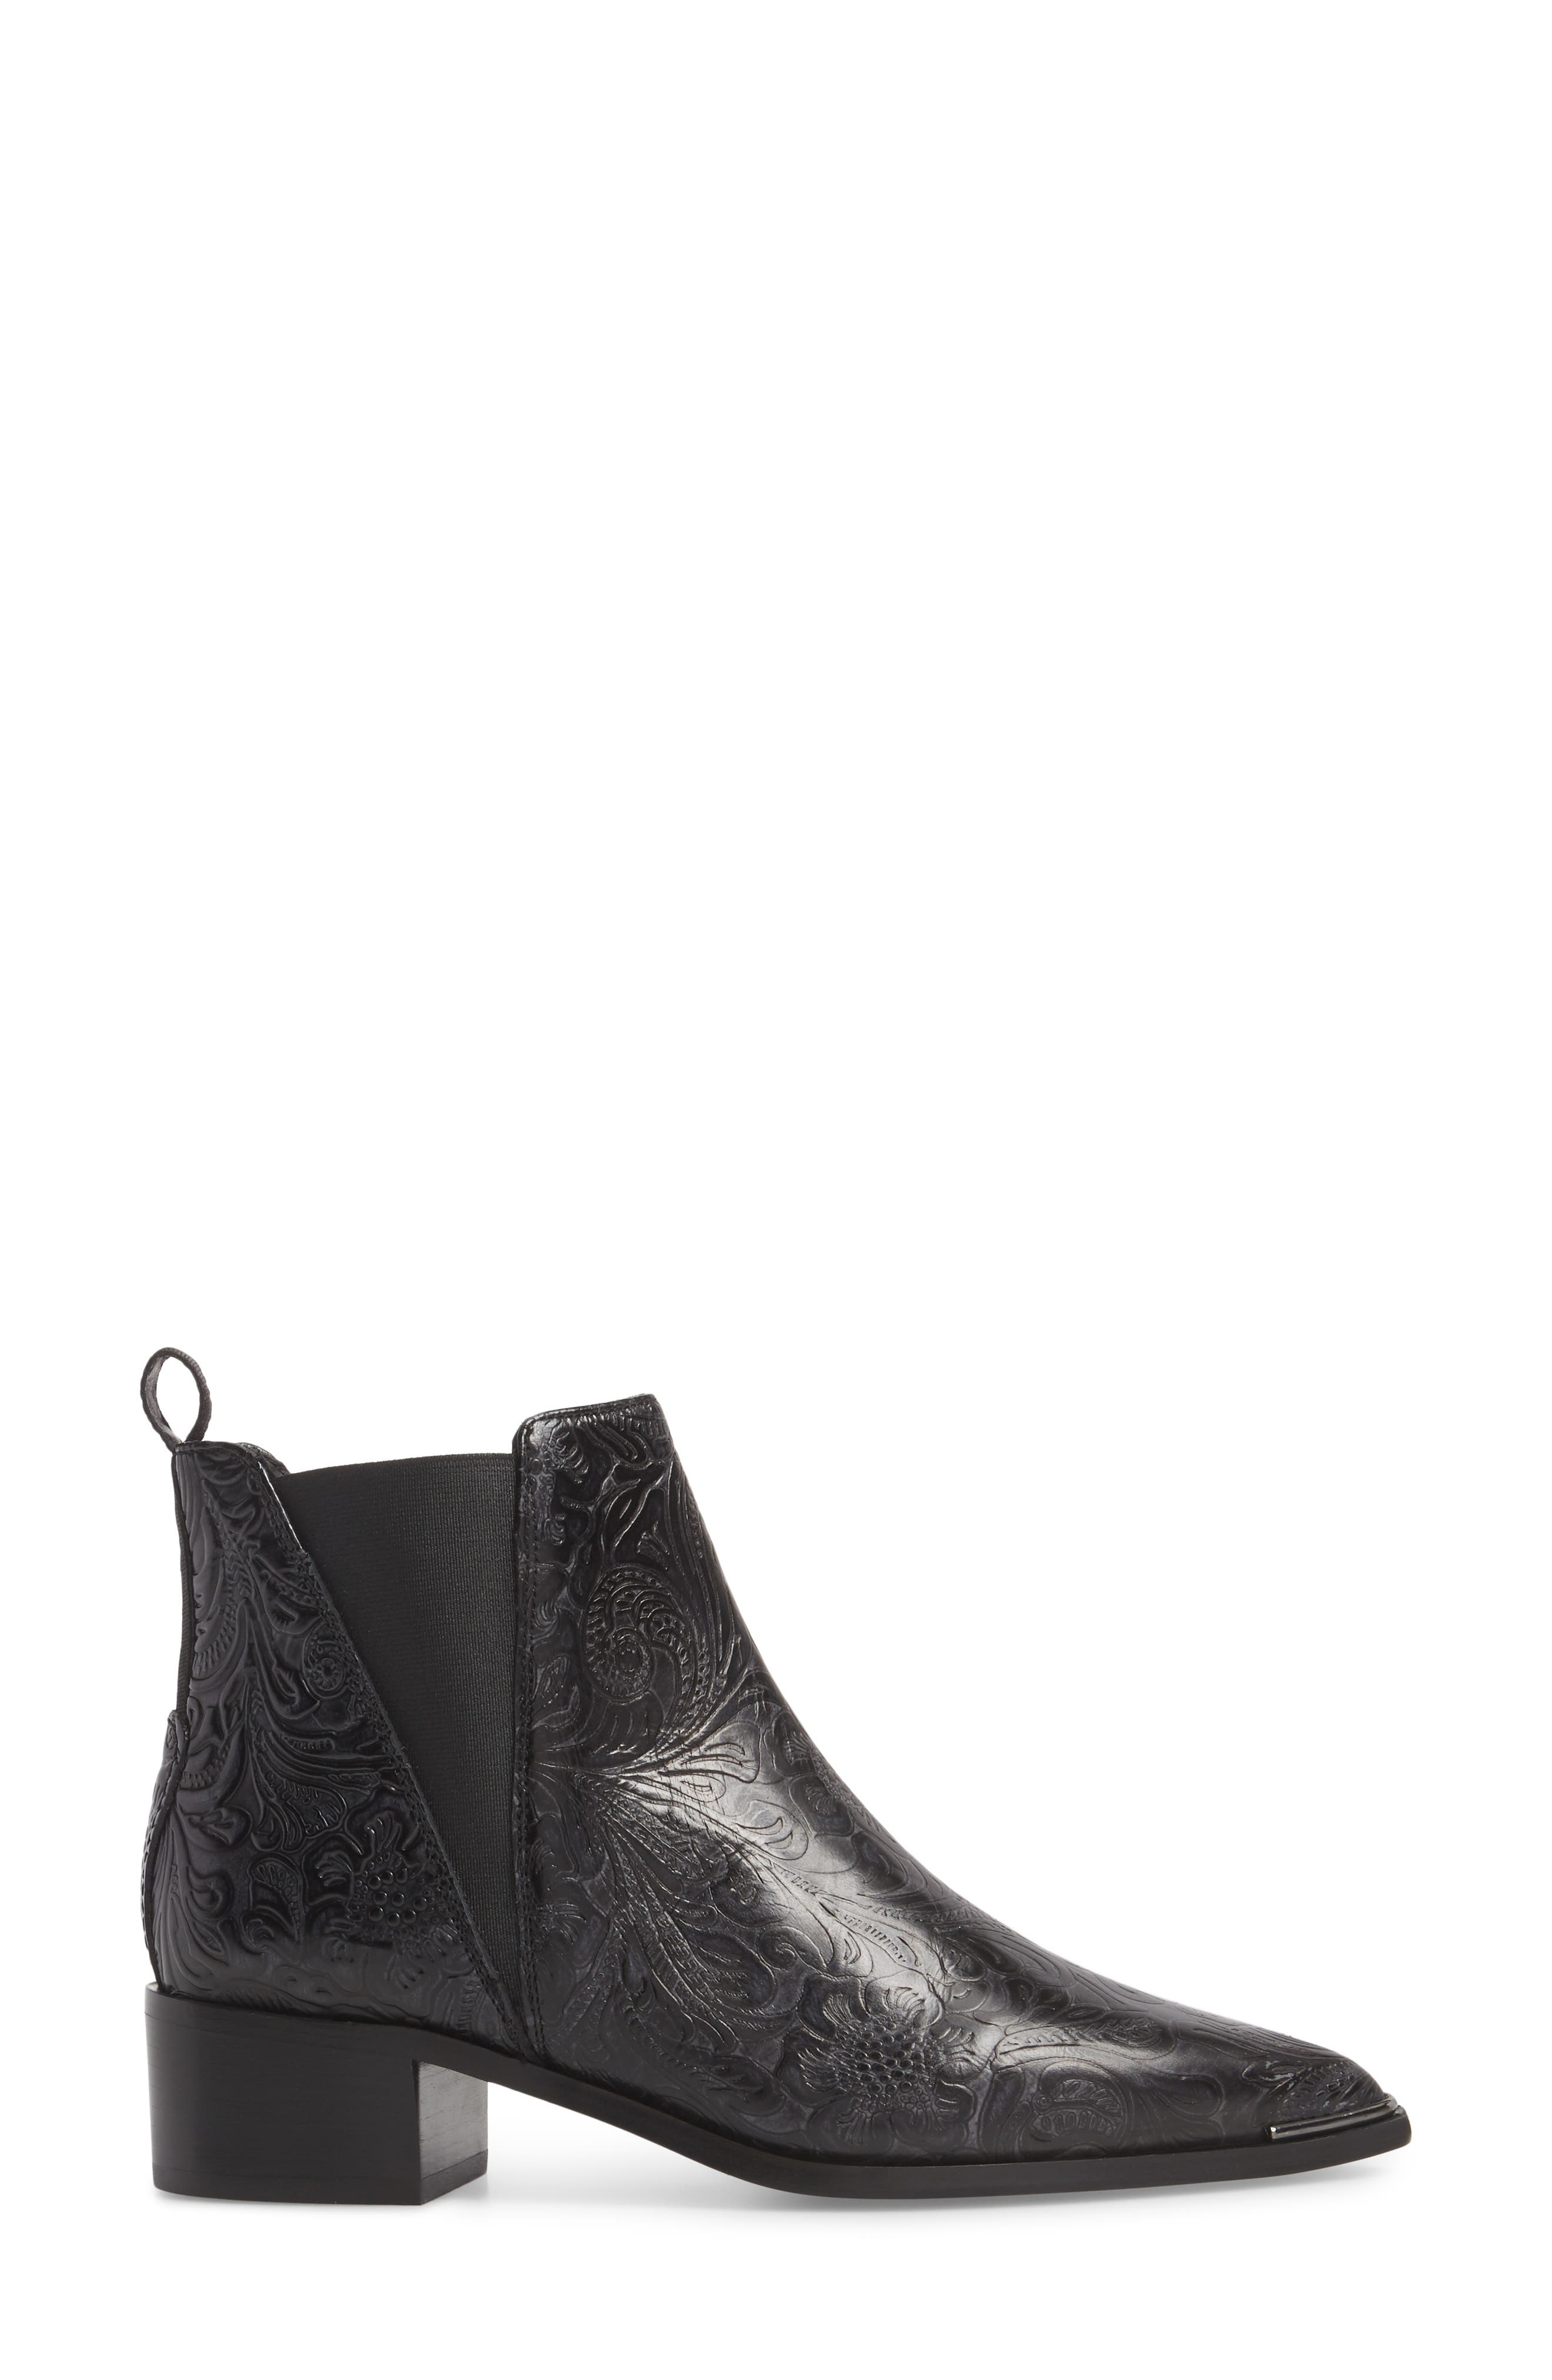 Jensen Pointy Toe Bootie,                             Alternate thumbnail 3, color,                             006